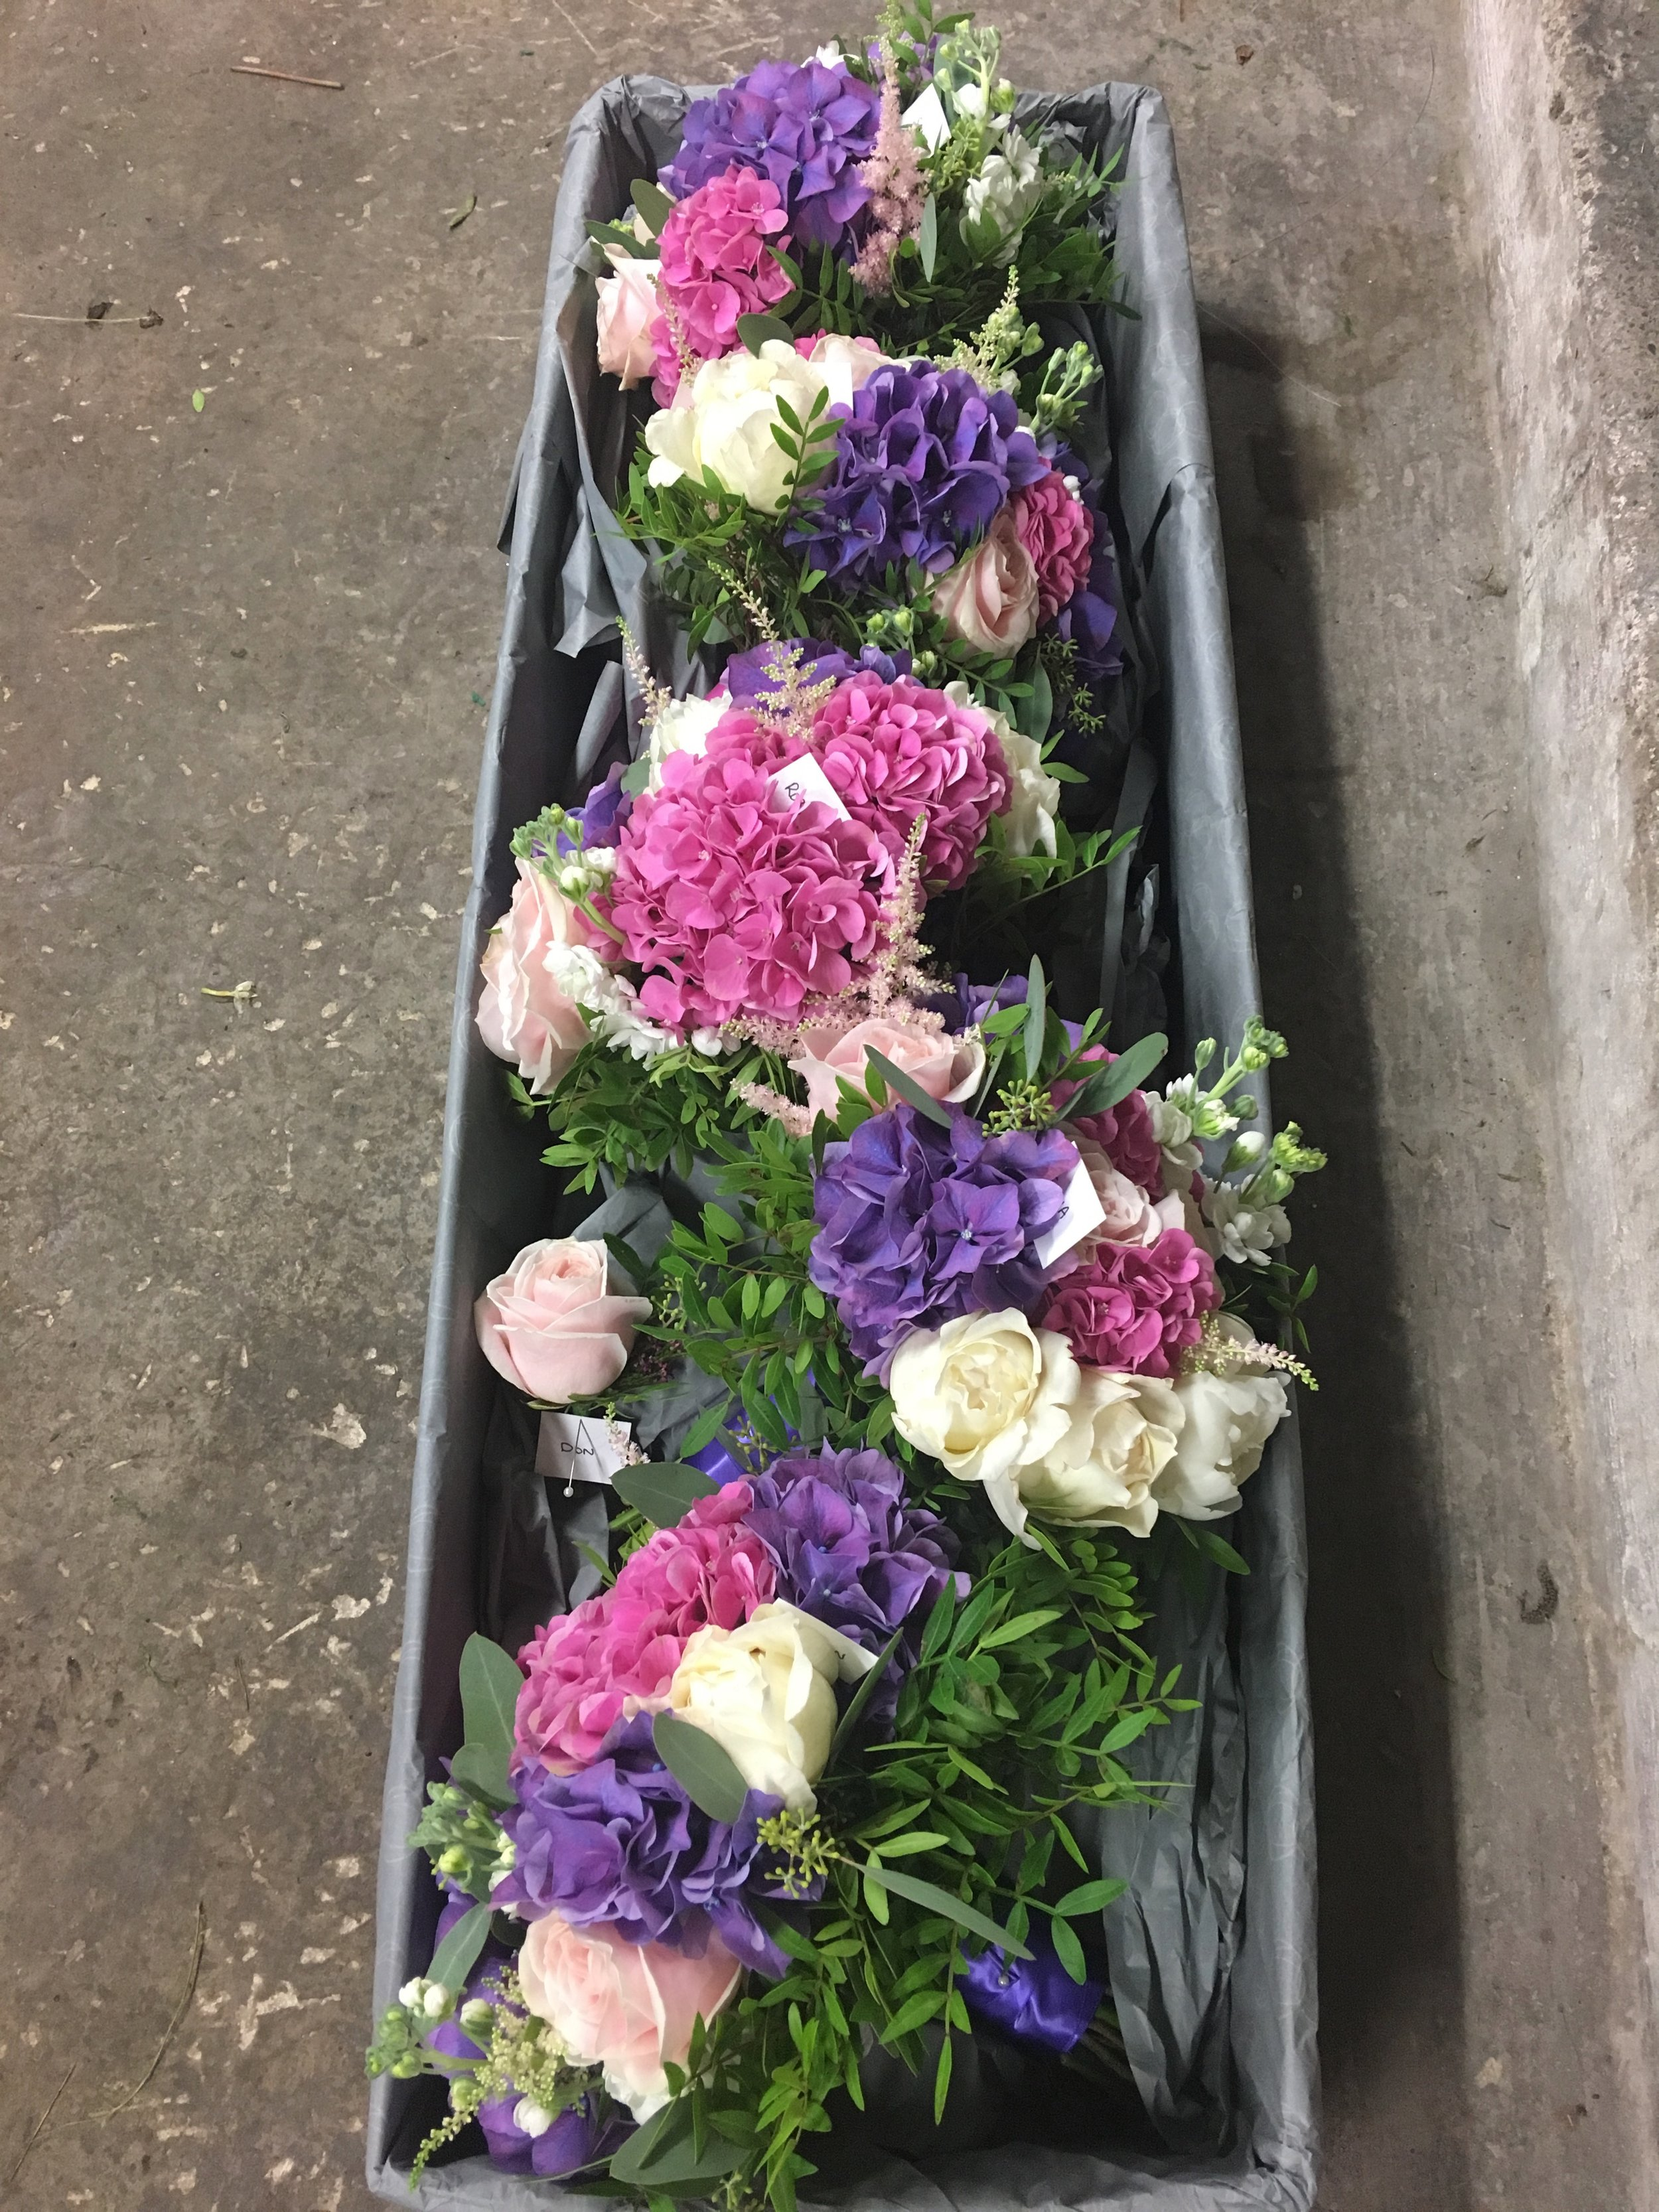 Delivered without water - In cooler months flowers are delivered in boxes without water.